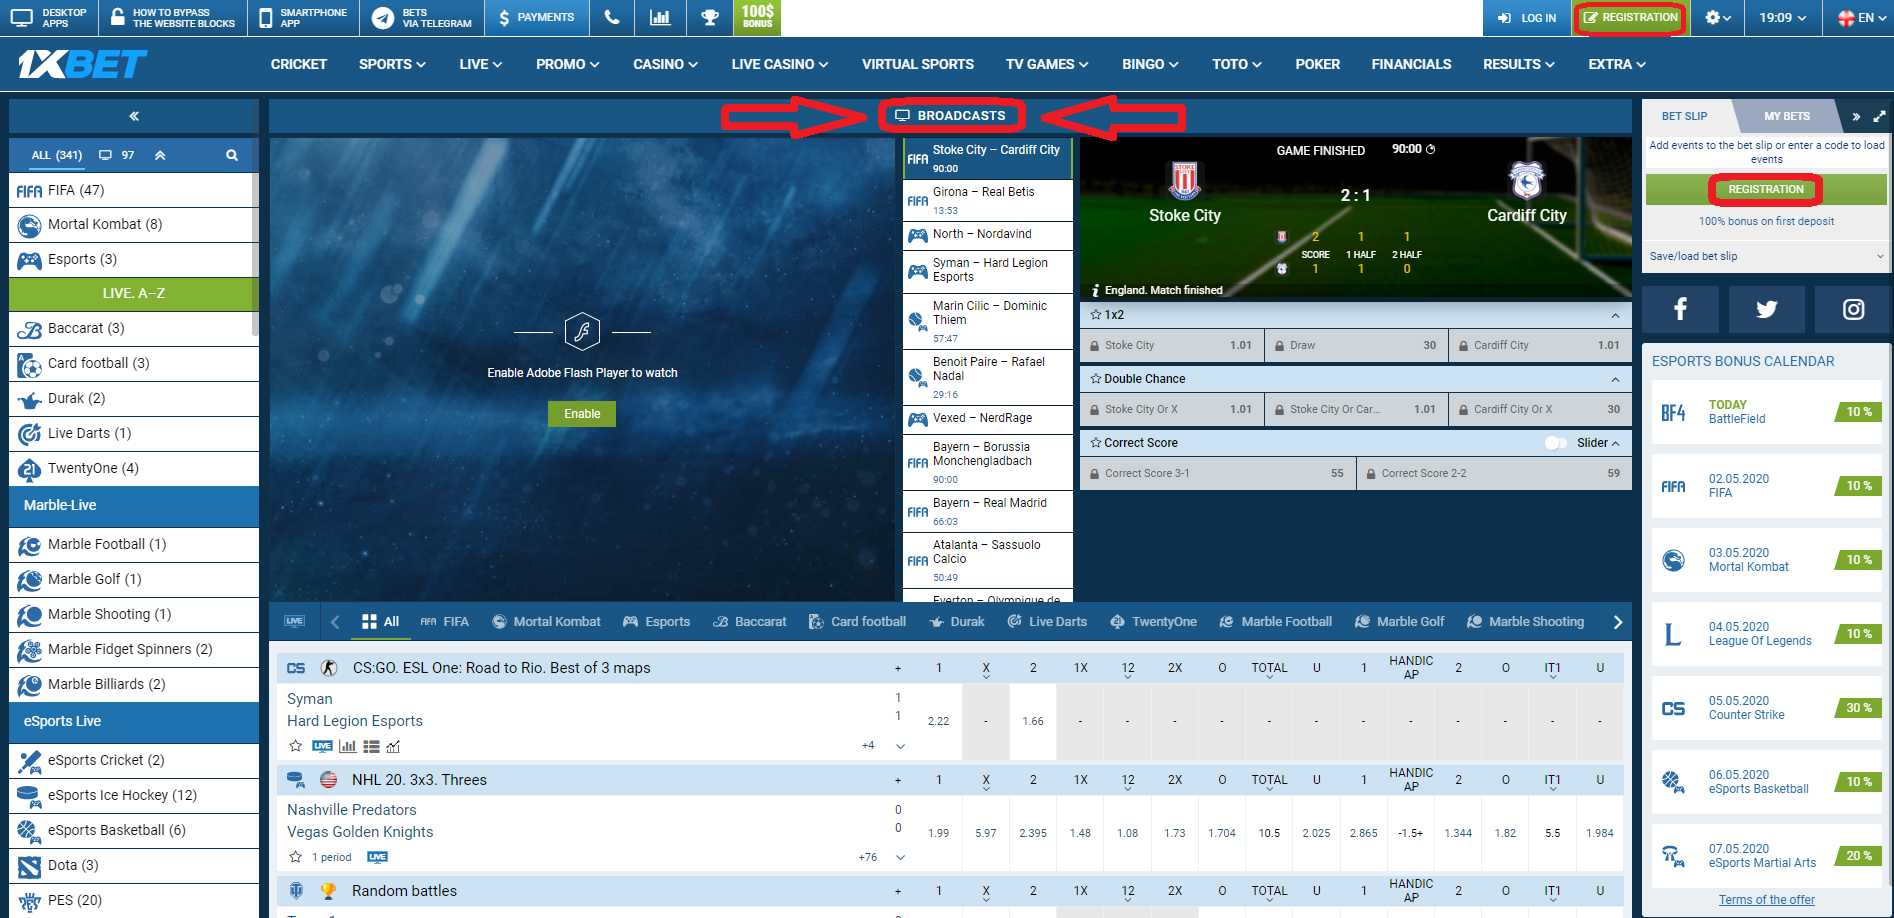 Awesome 1xBet Betting Tips